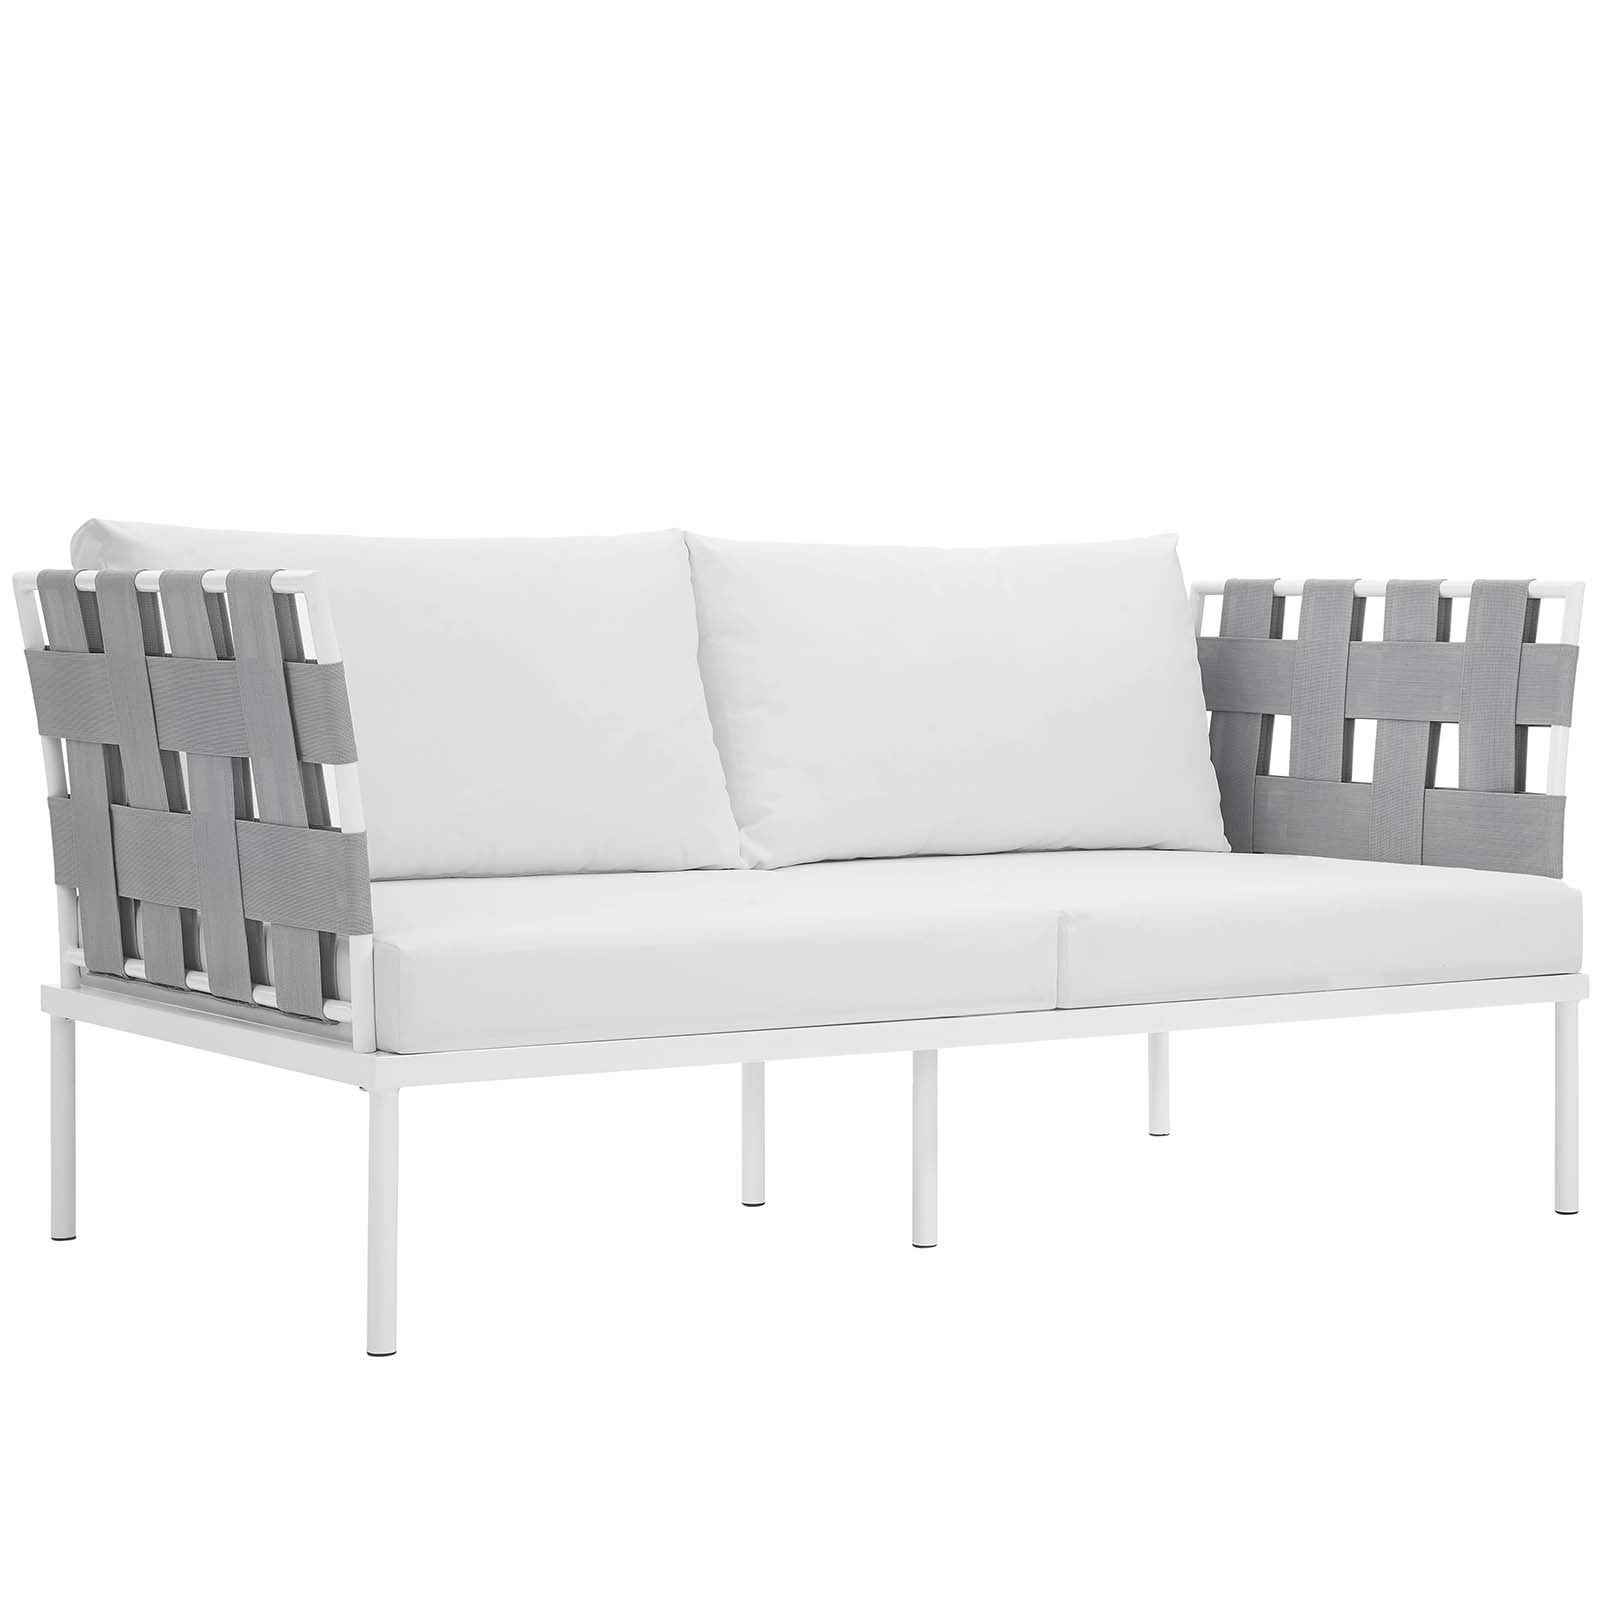 Shop Harmony 5 Piece Outdoor Patio Aluminum Sectional Sofa Set   On Sale    Free Shipping Today   Overstock.com   14430260